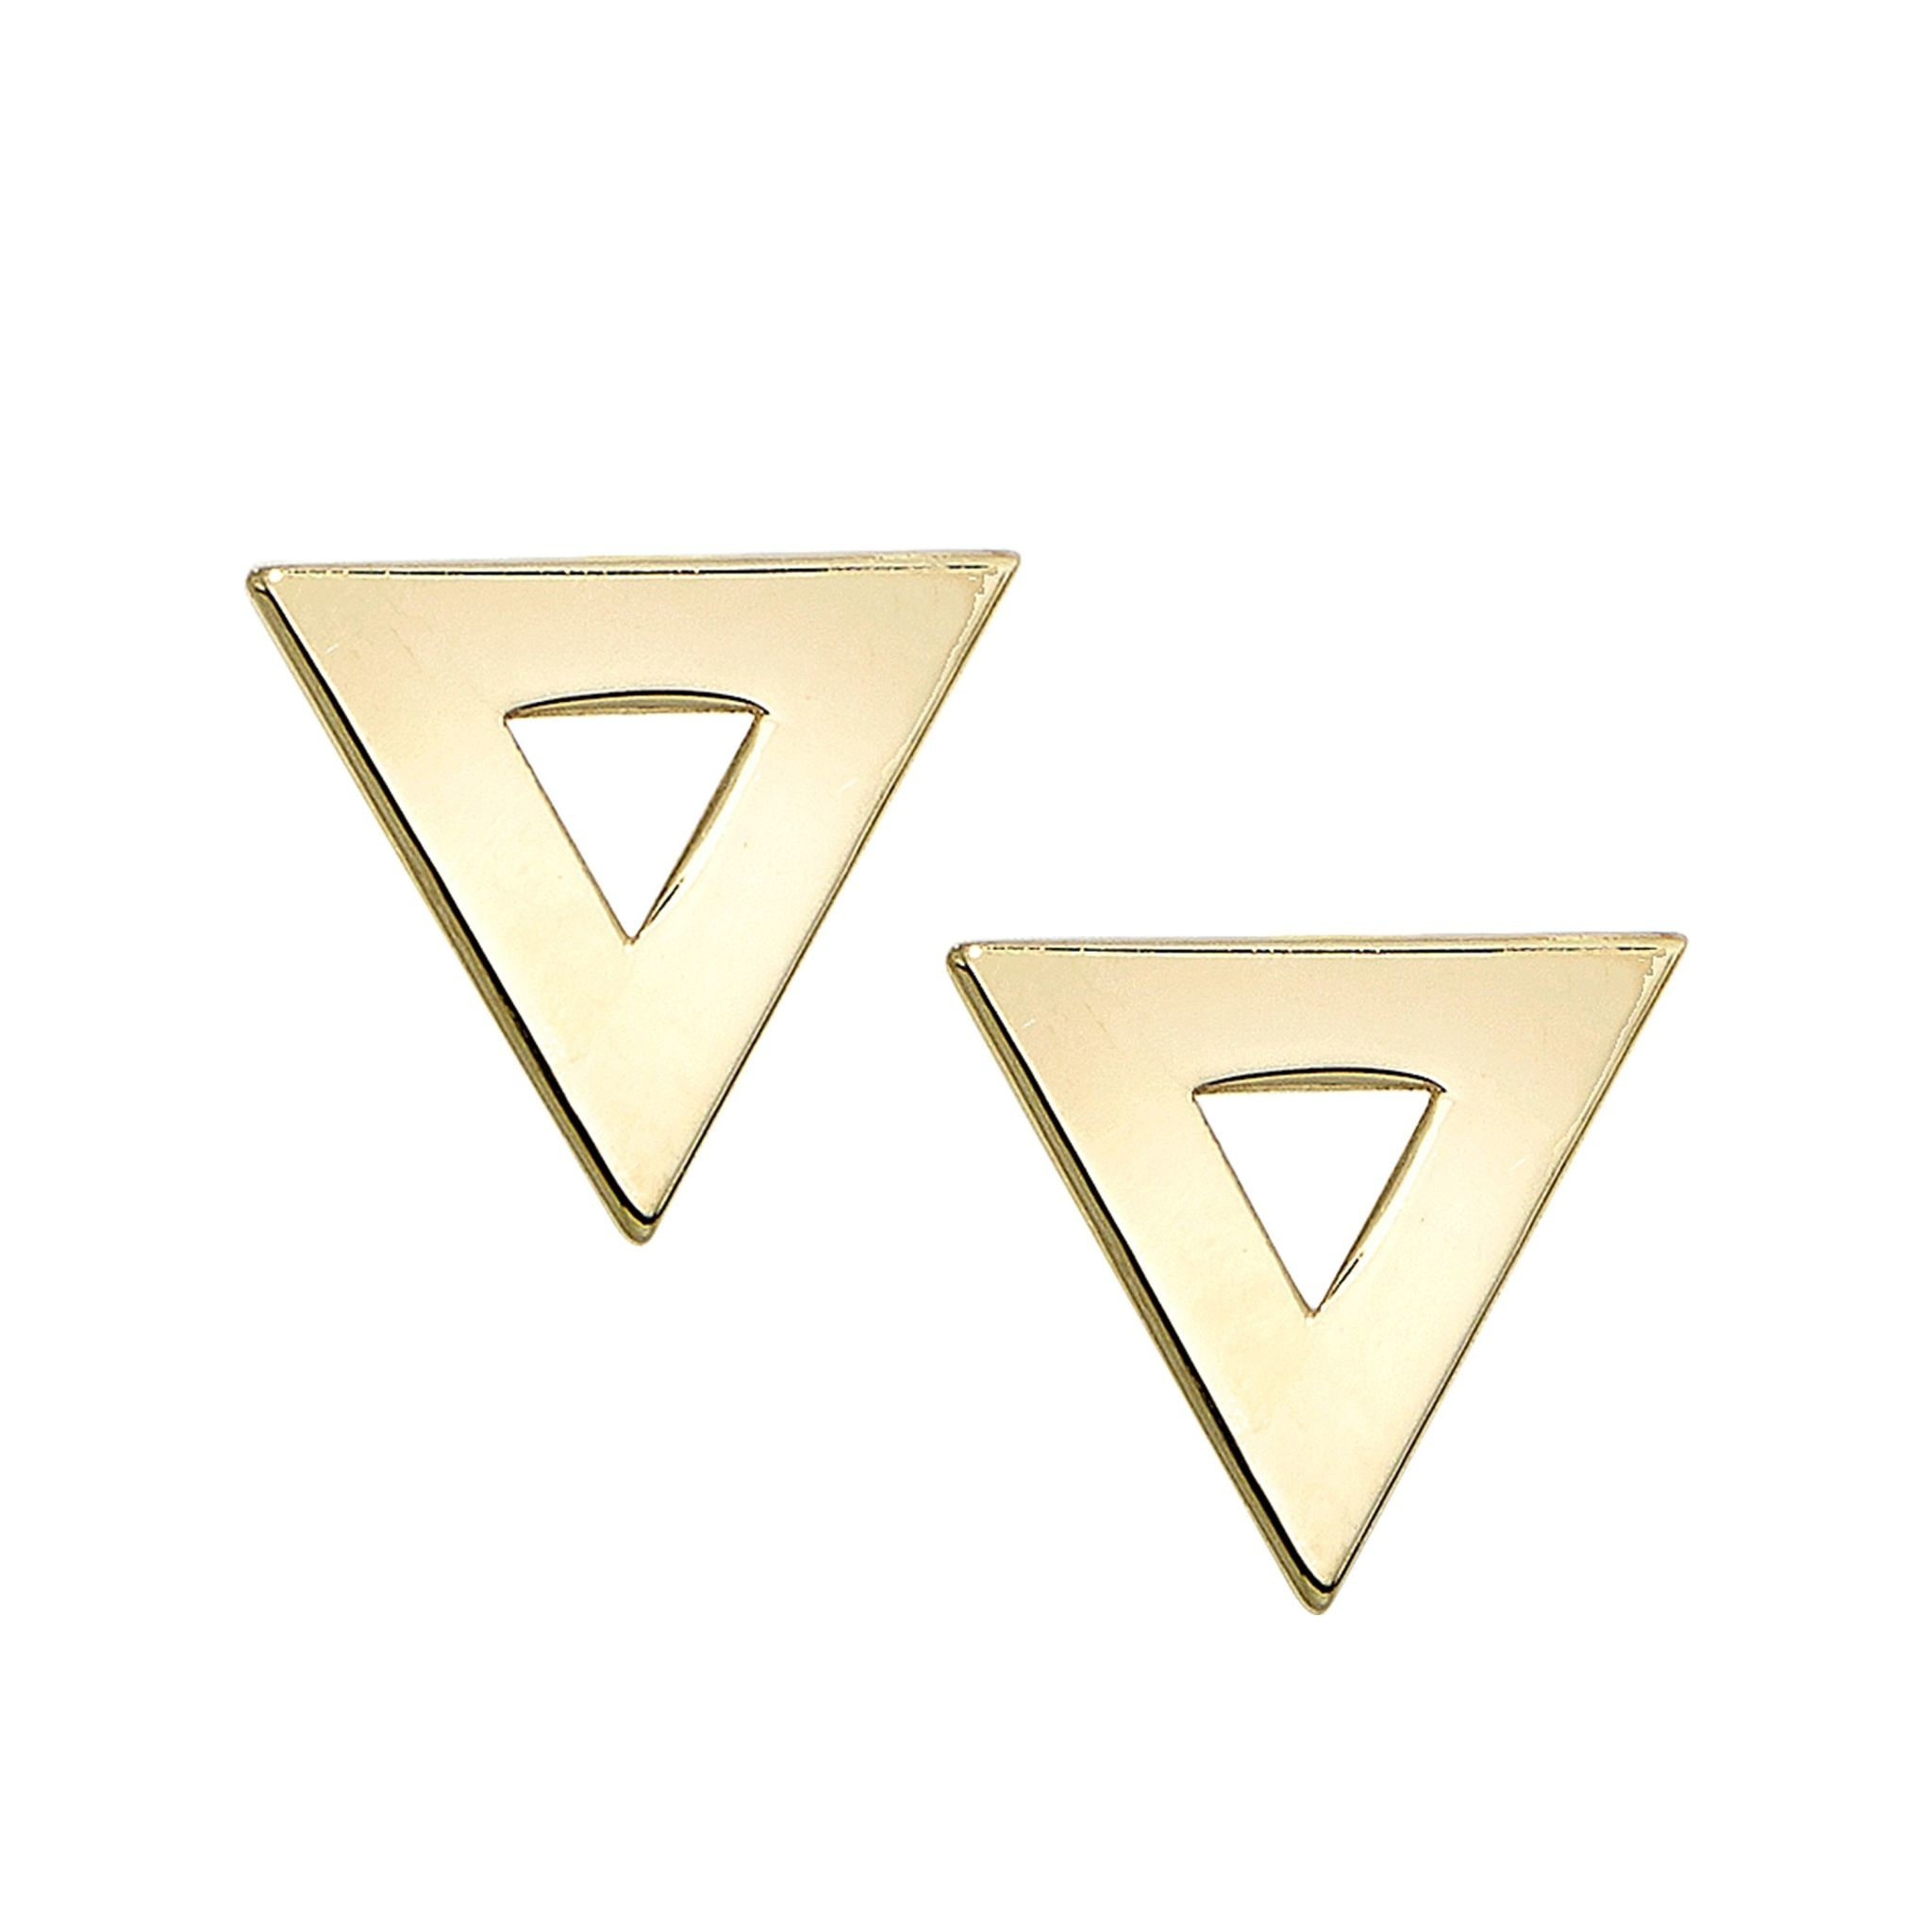 14K yellow gold 8.3X9.2mm triangle post earrings